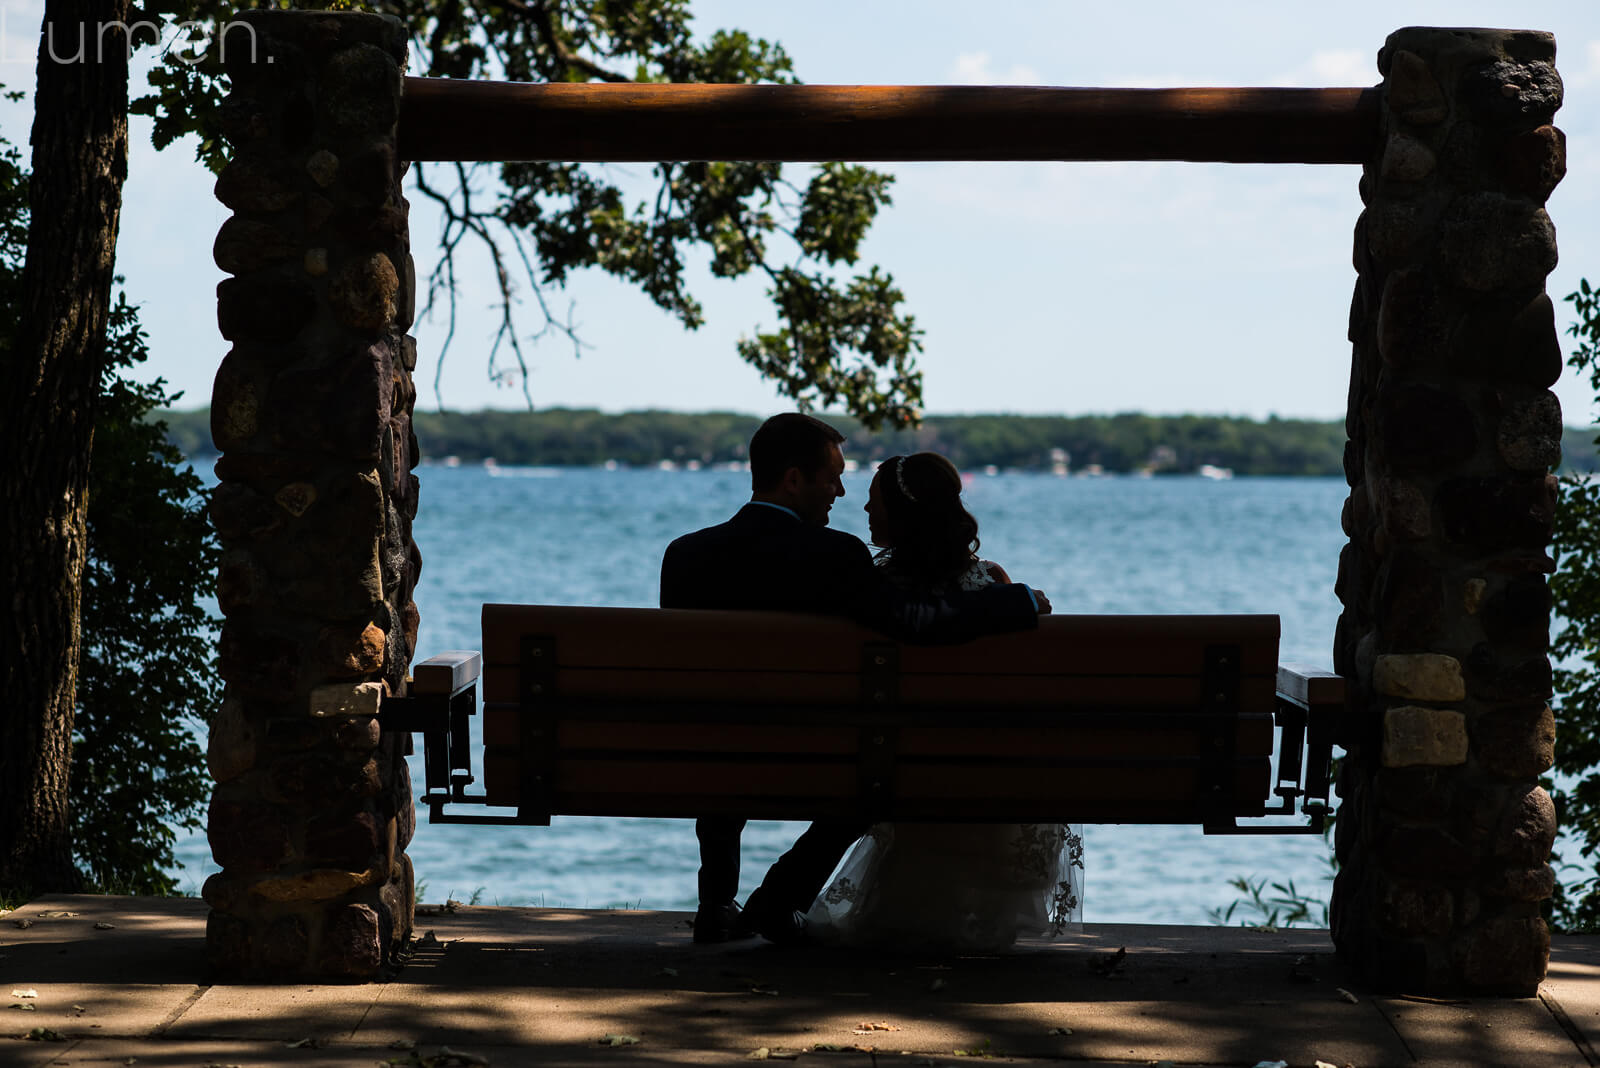 lumen photography, adventurous wedding photography,, okoboji wedding photography, iowa wedding photography,, minneapolis wedding photographer